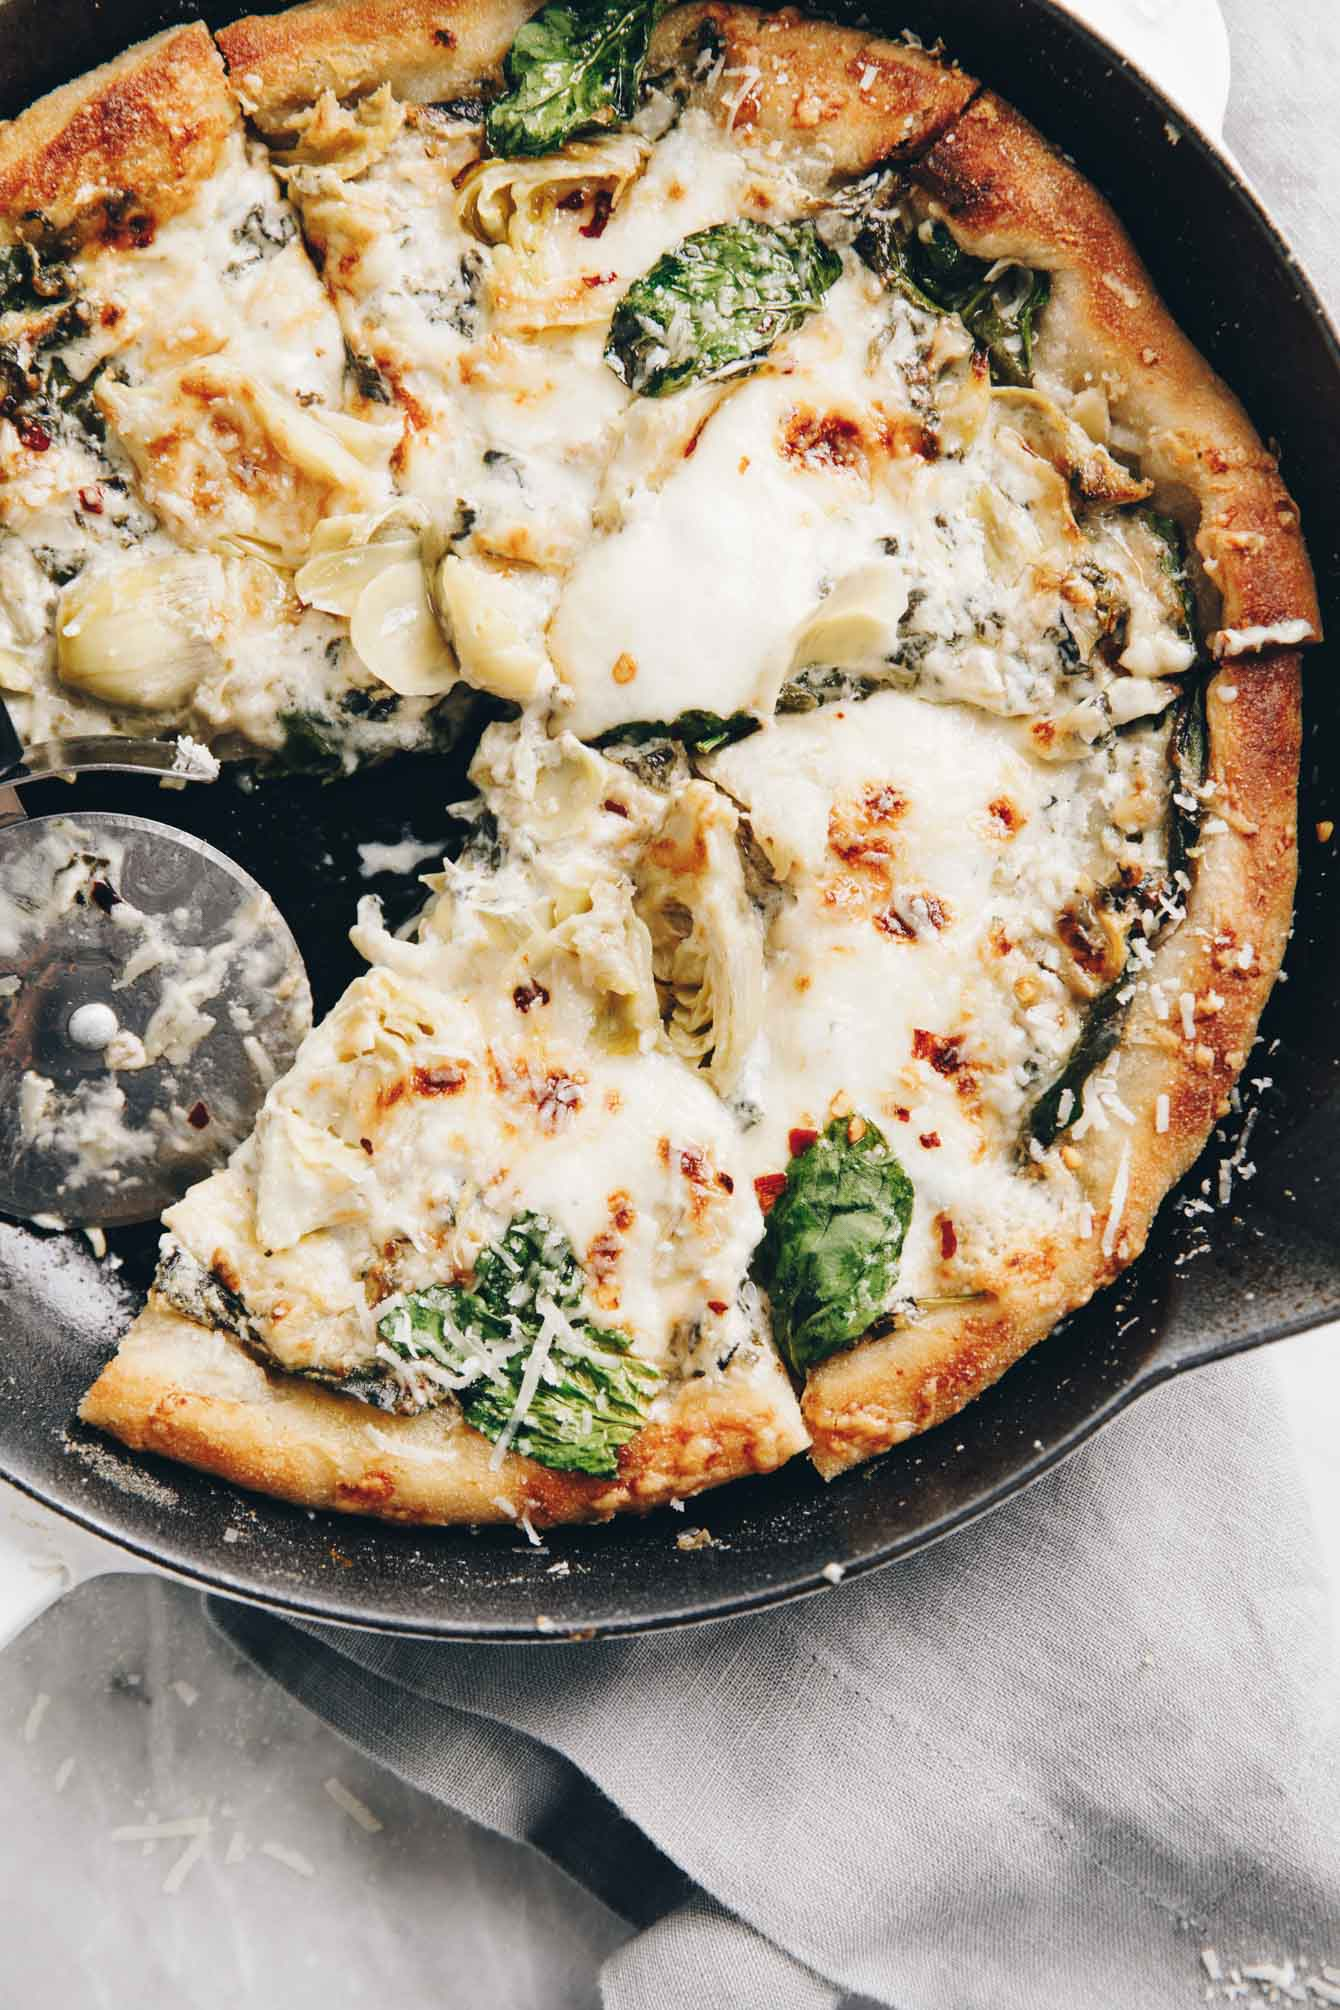 Easy cheesy spinach artichoke pizza so delicious, you'll eat the whole pie yourself